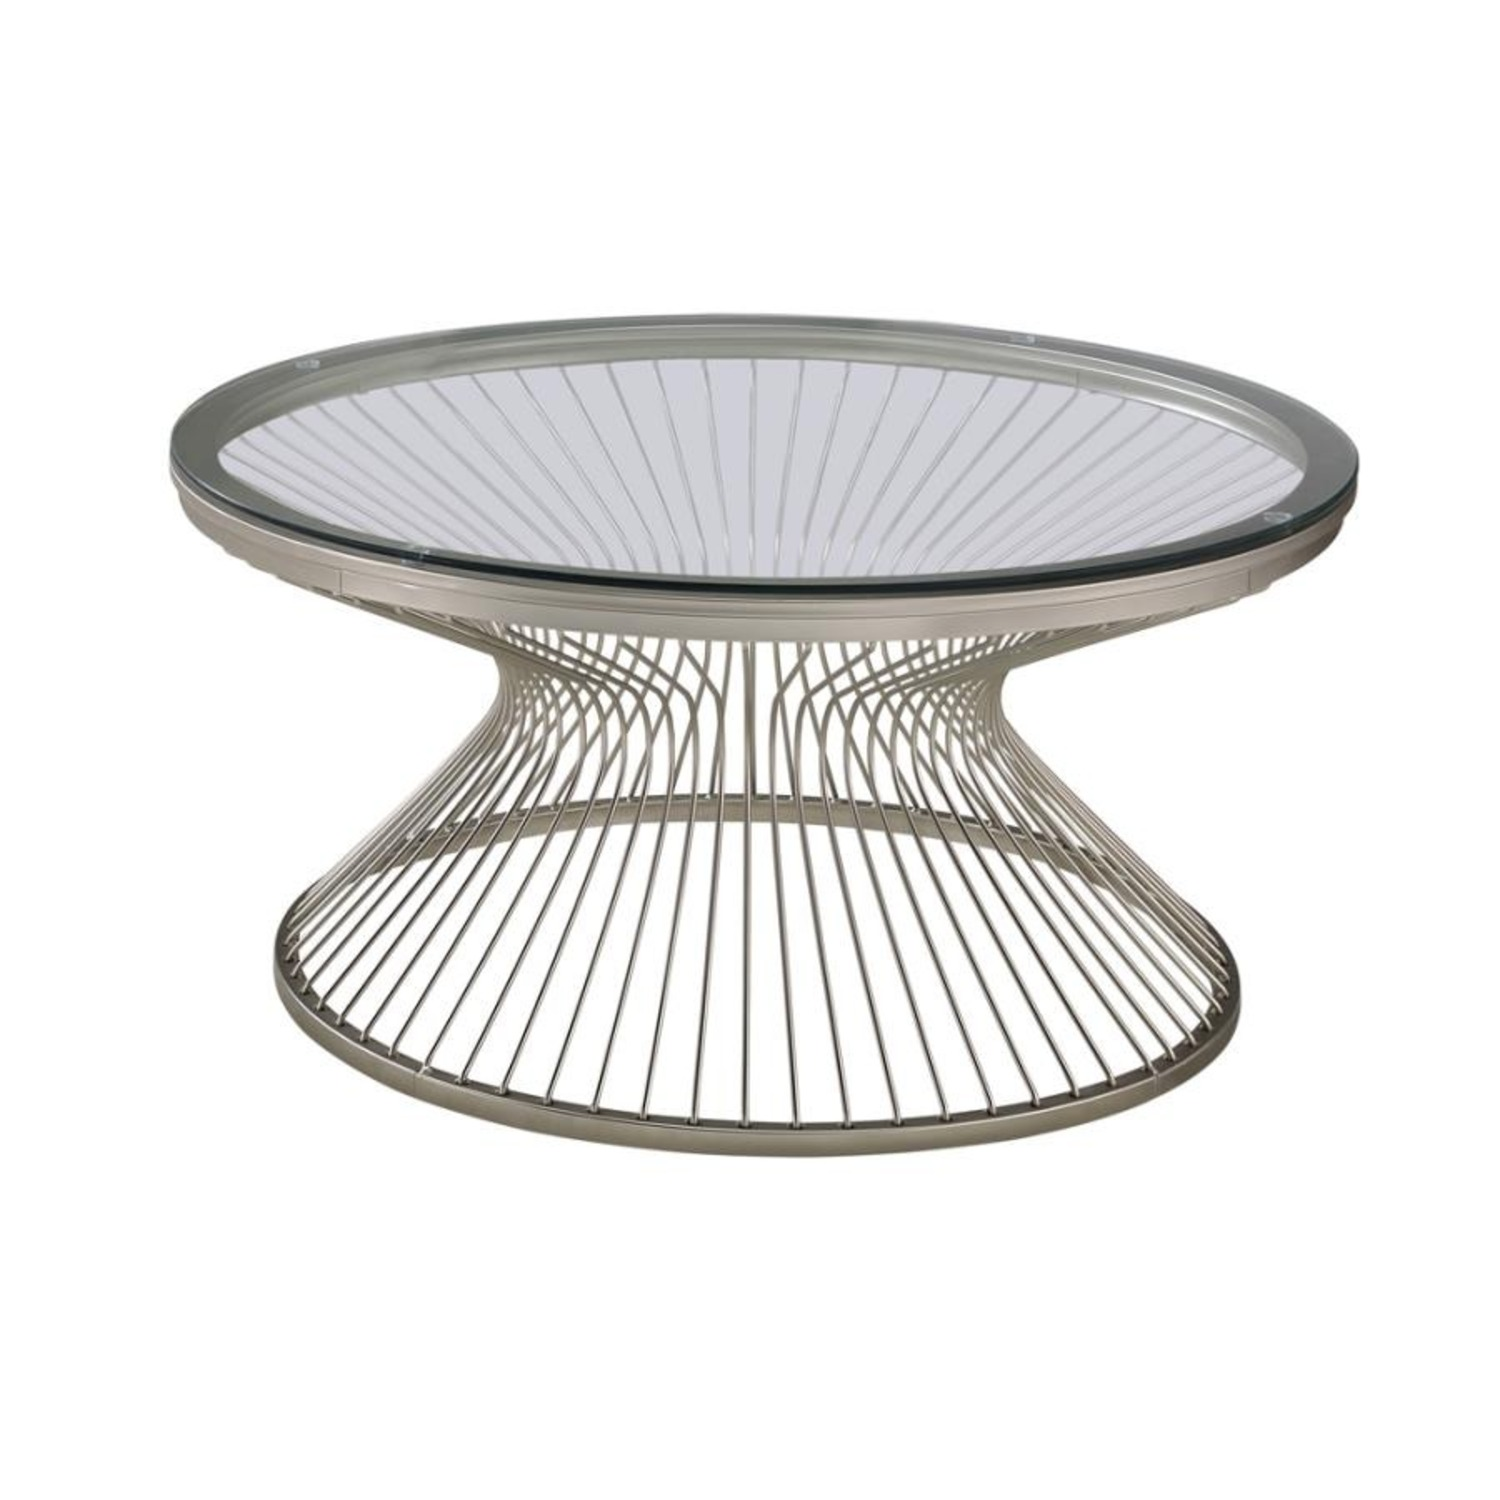 Coffee Table In Satin Nickel W/ Tempered Glass - image-1